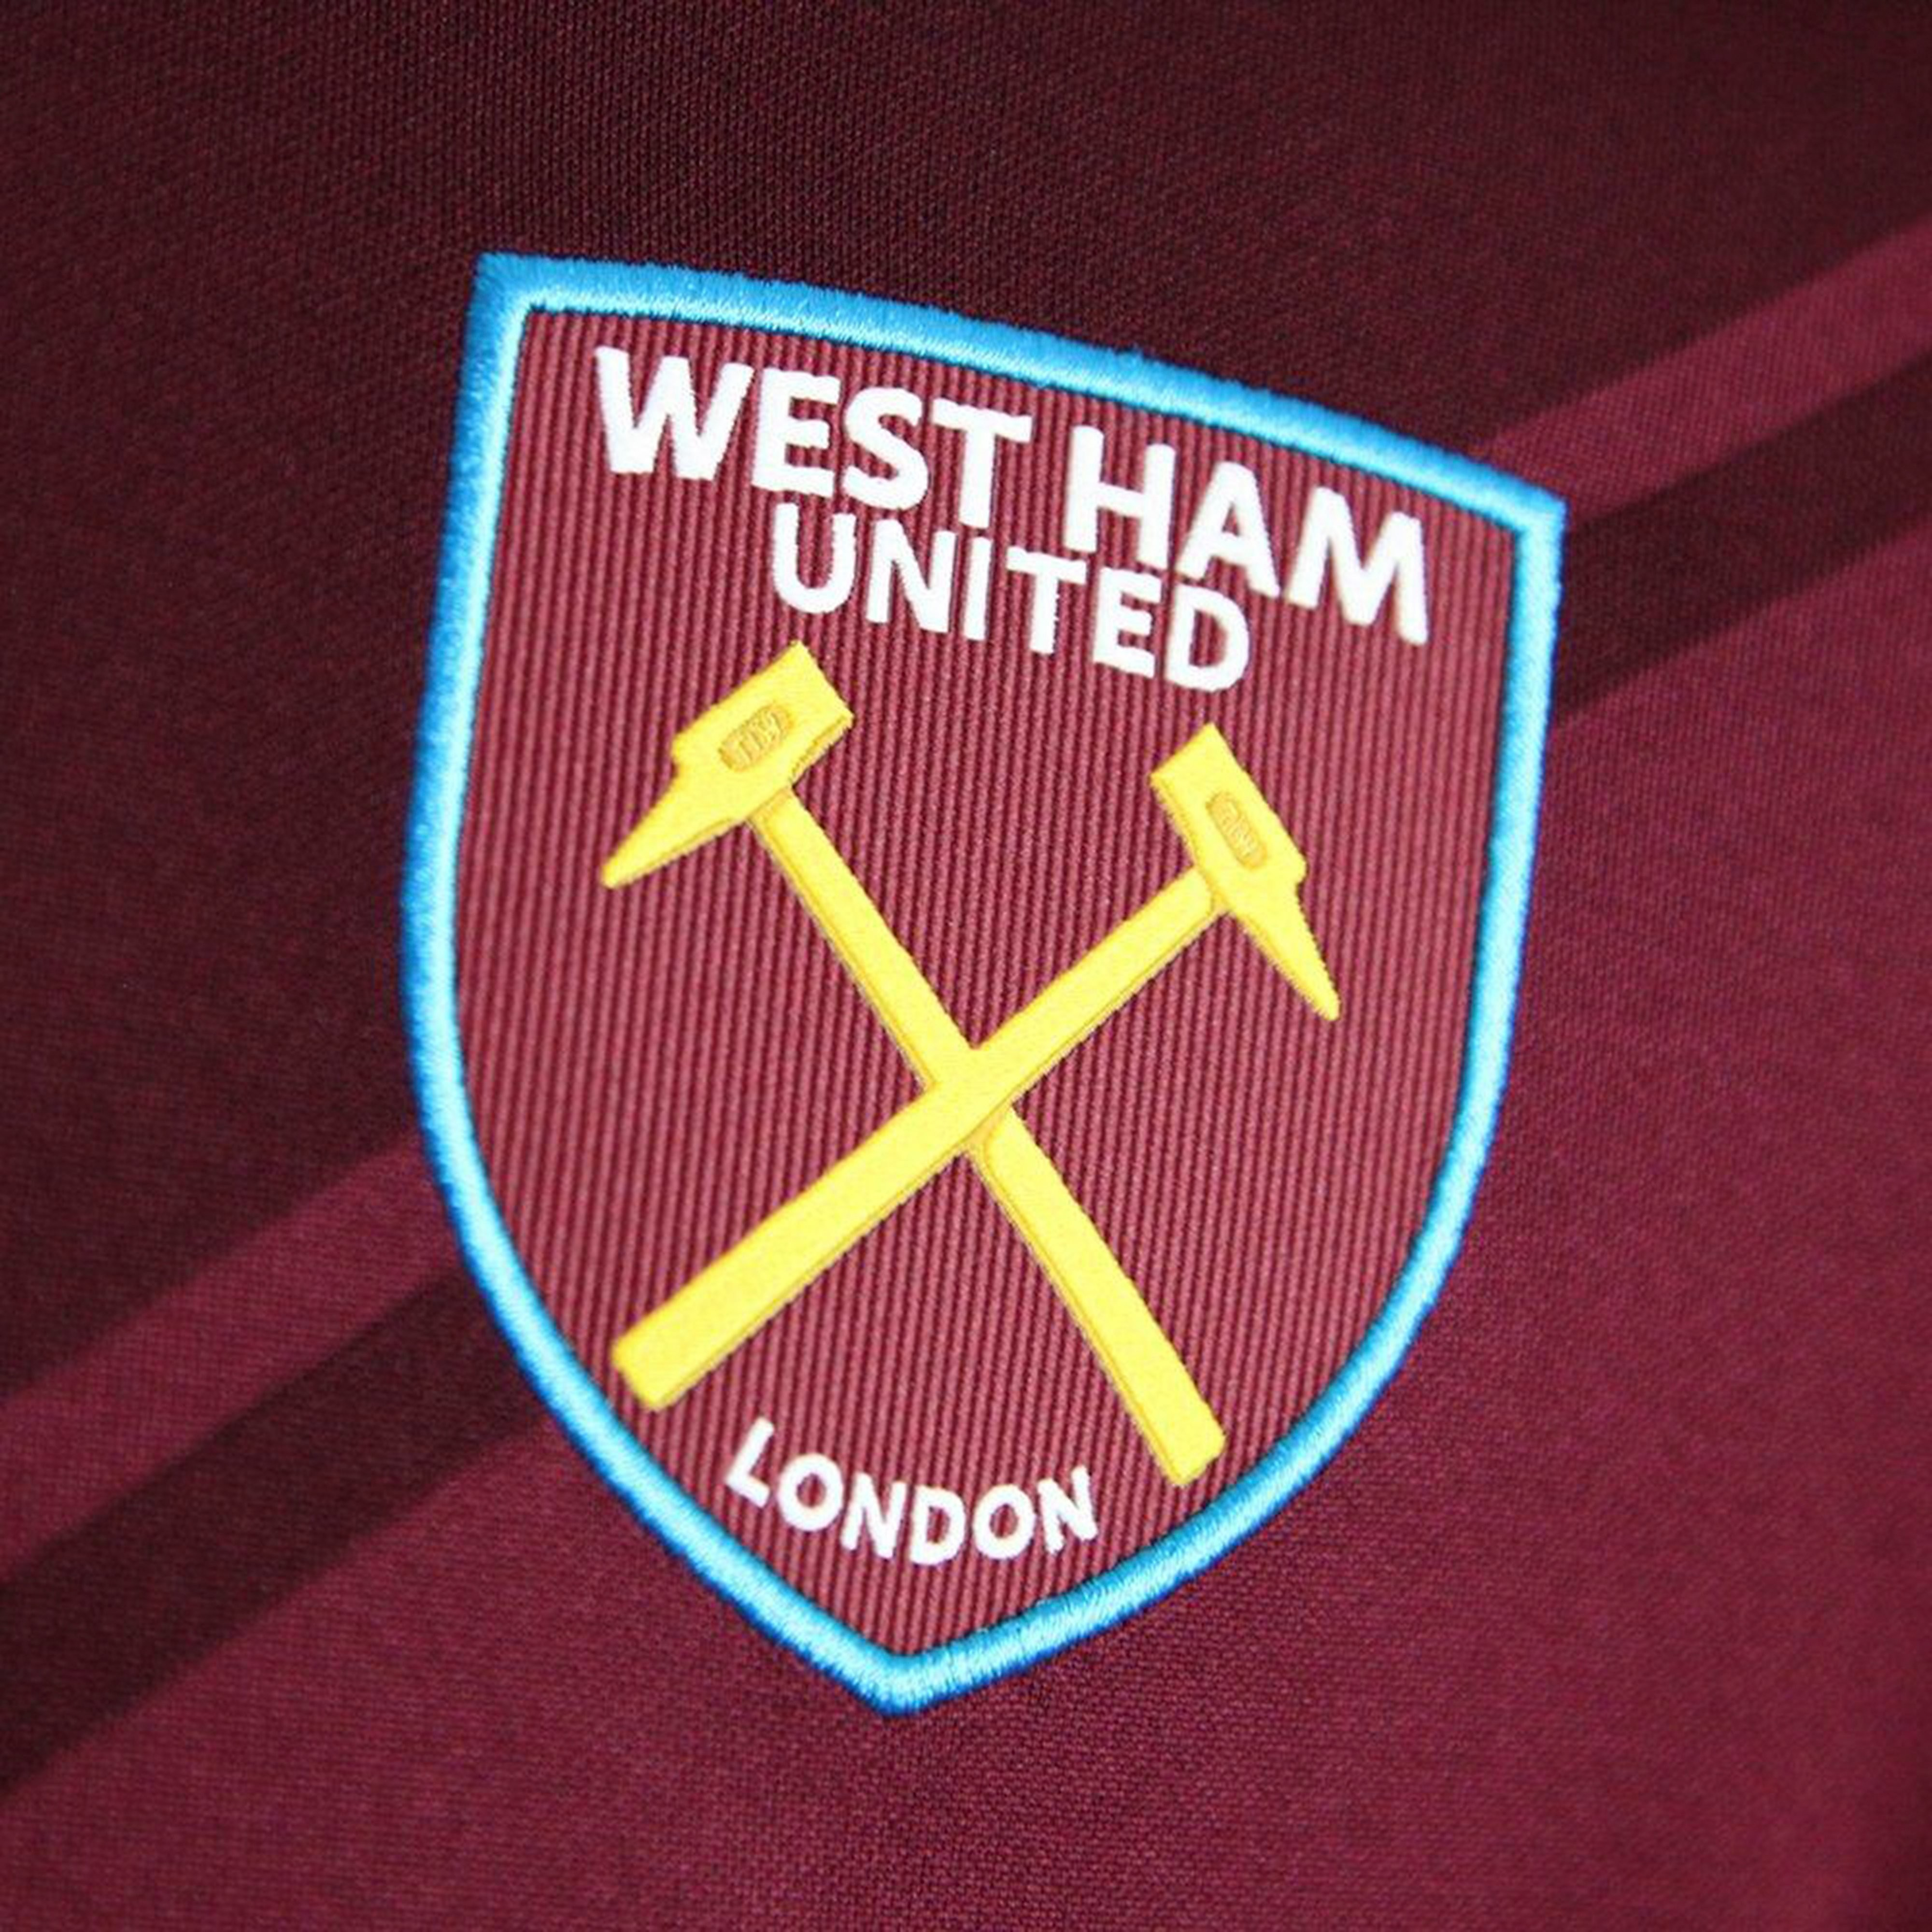 Umbro West Ham United Home 2017/18 Men's Shirt